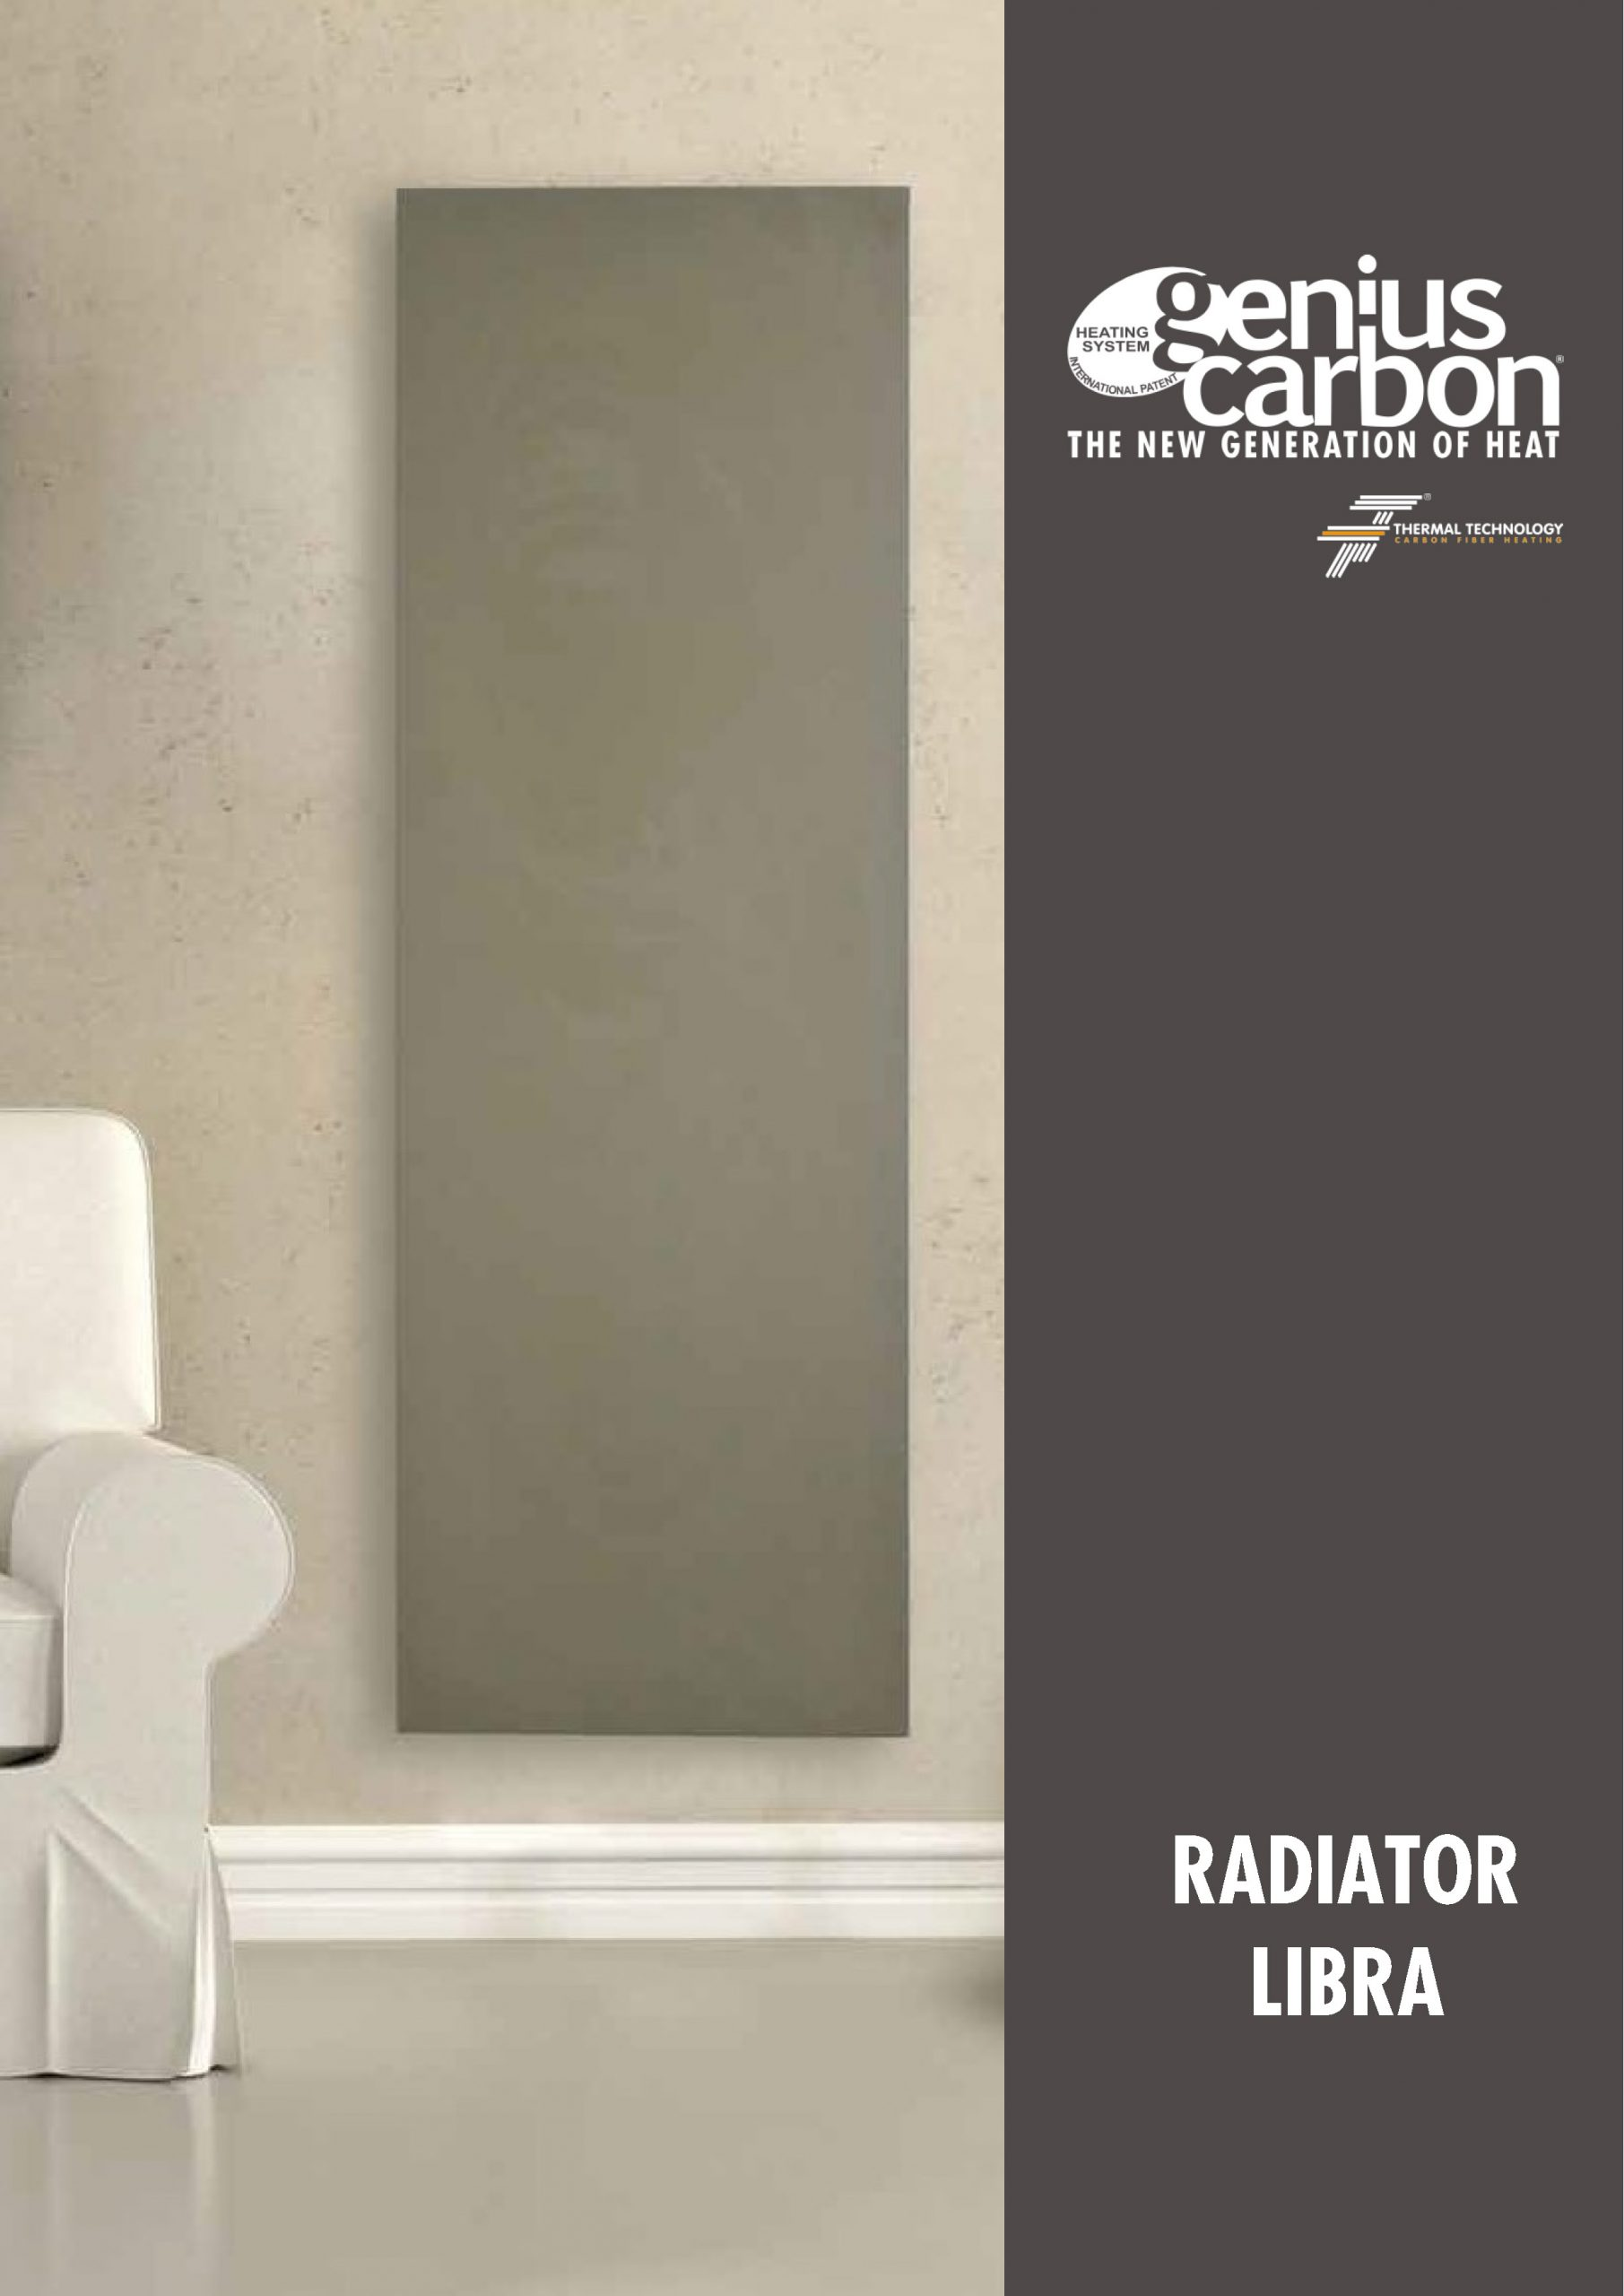 https://thermaltechnology.ro/wp-content/uploads/2020/03/RADIATOR-LIBRA_RD10_RO_Page_1-scaled.jpg